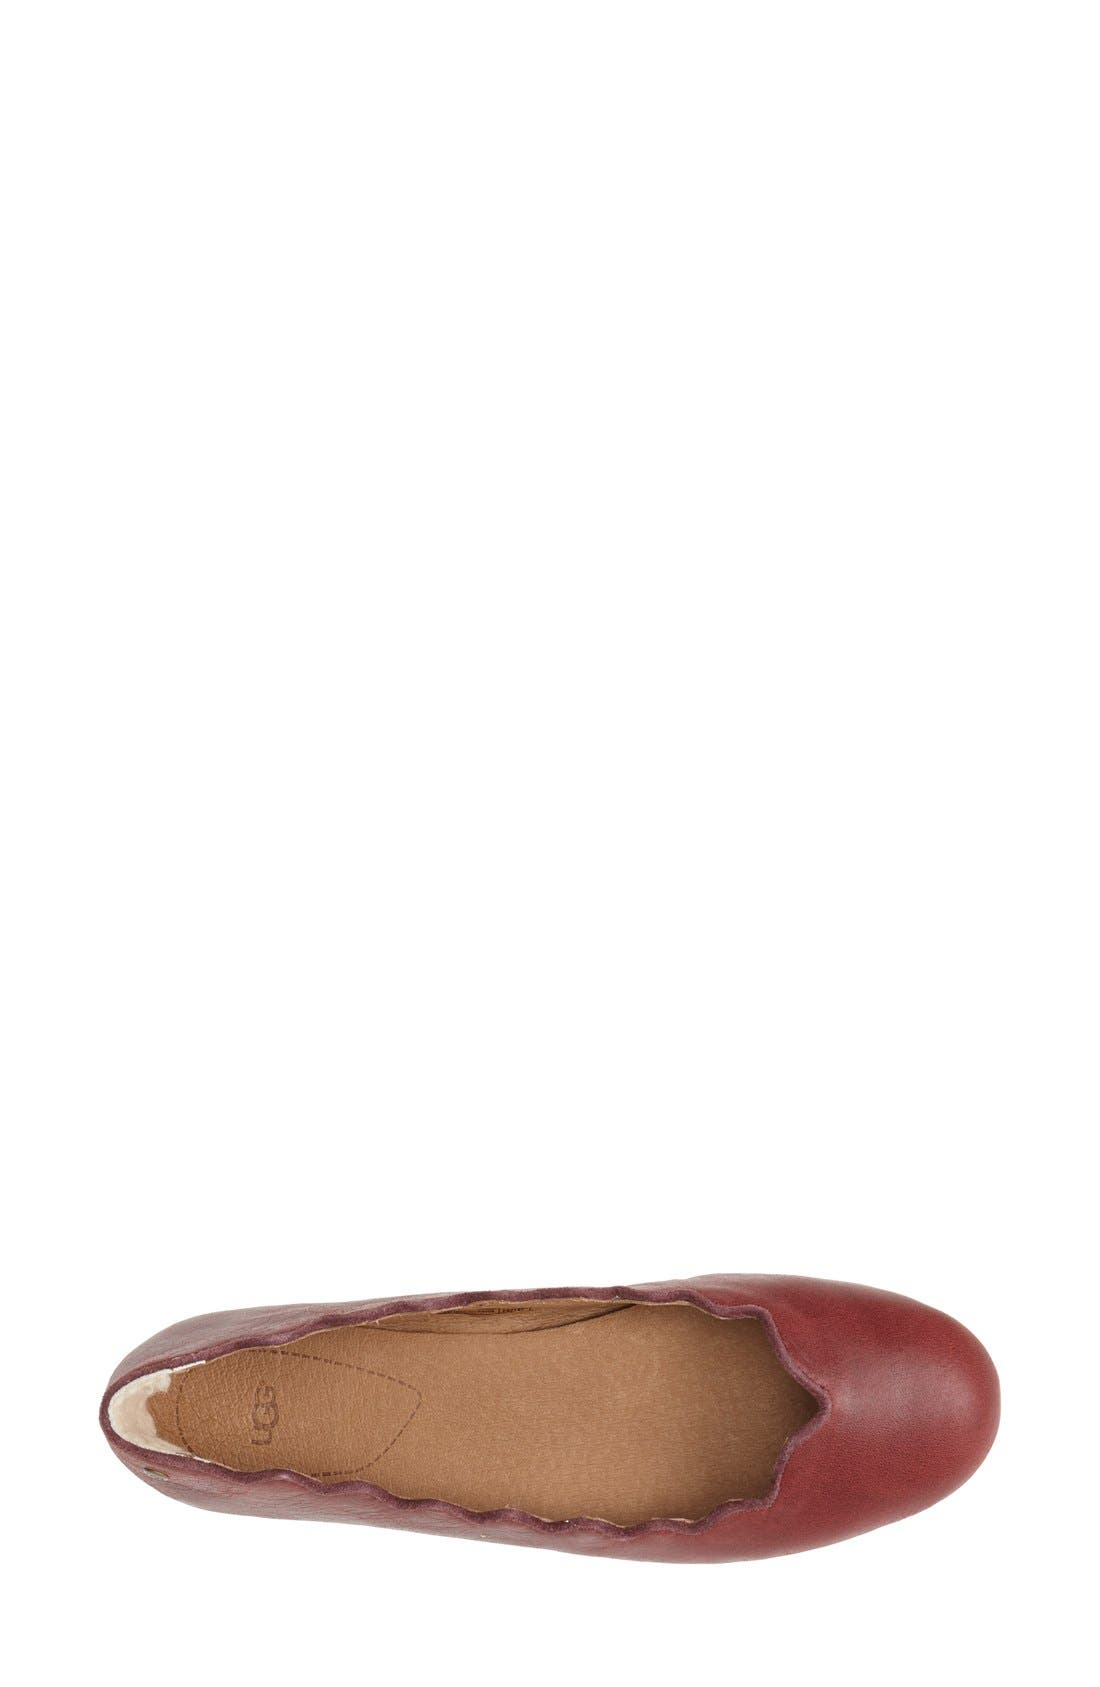 Alternate Image 3  - UGG® Australia 'Chandra' Scalloped Flat (Women)